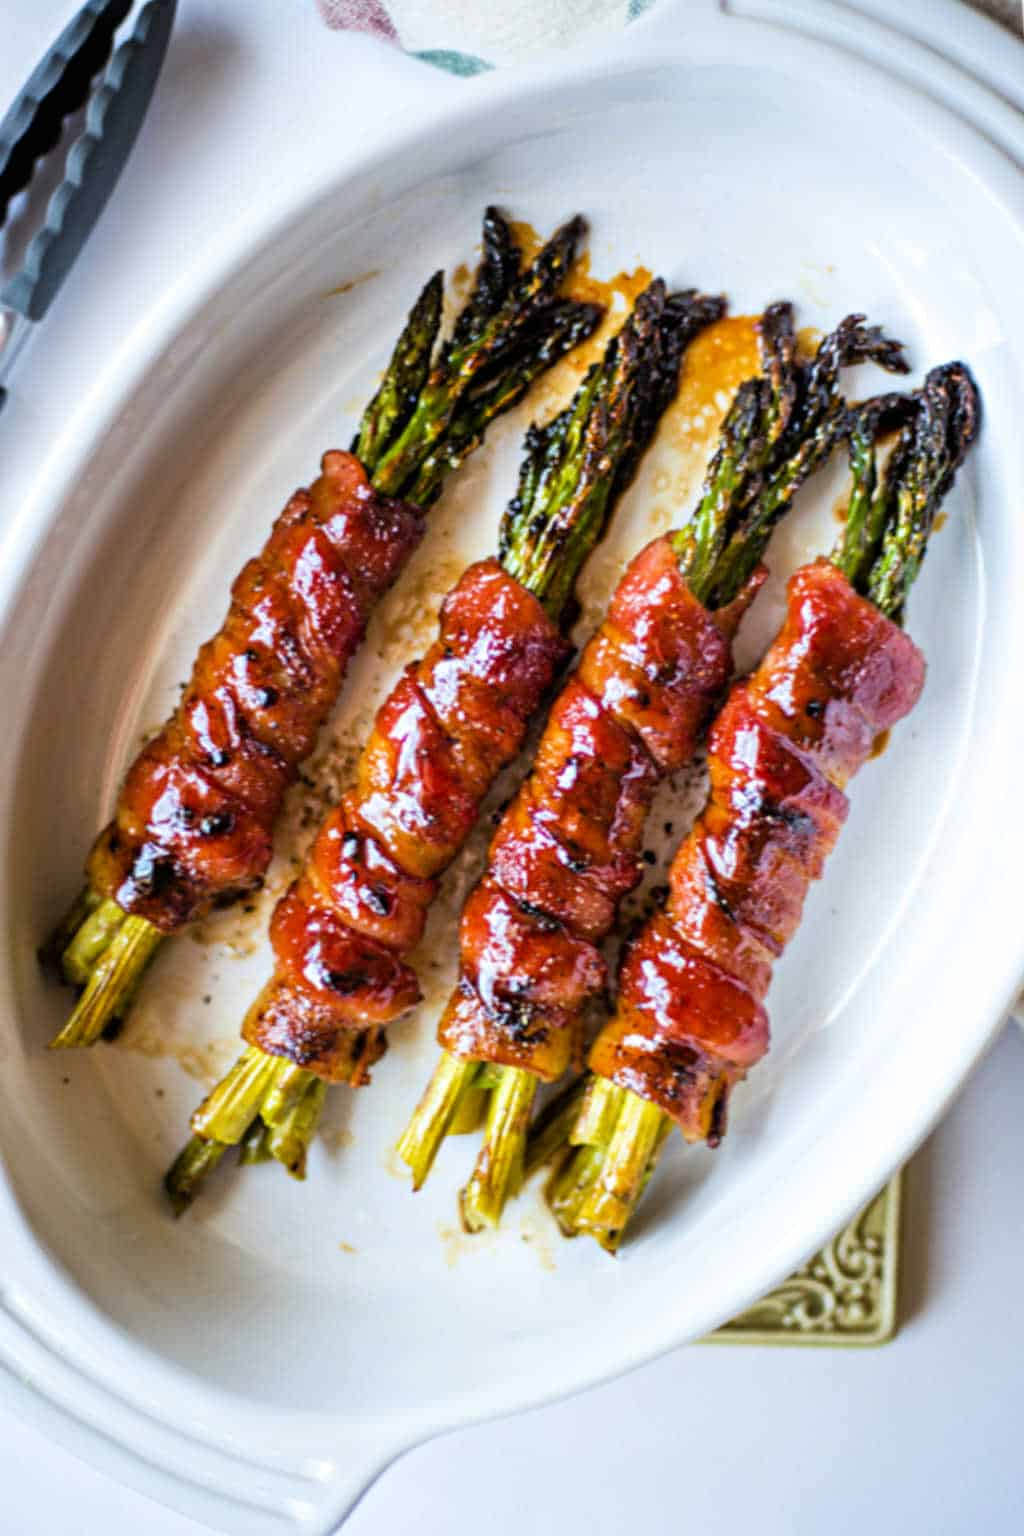 Bacon Wrapped Asparagus in a white baking dish